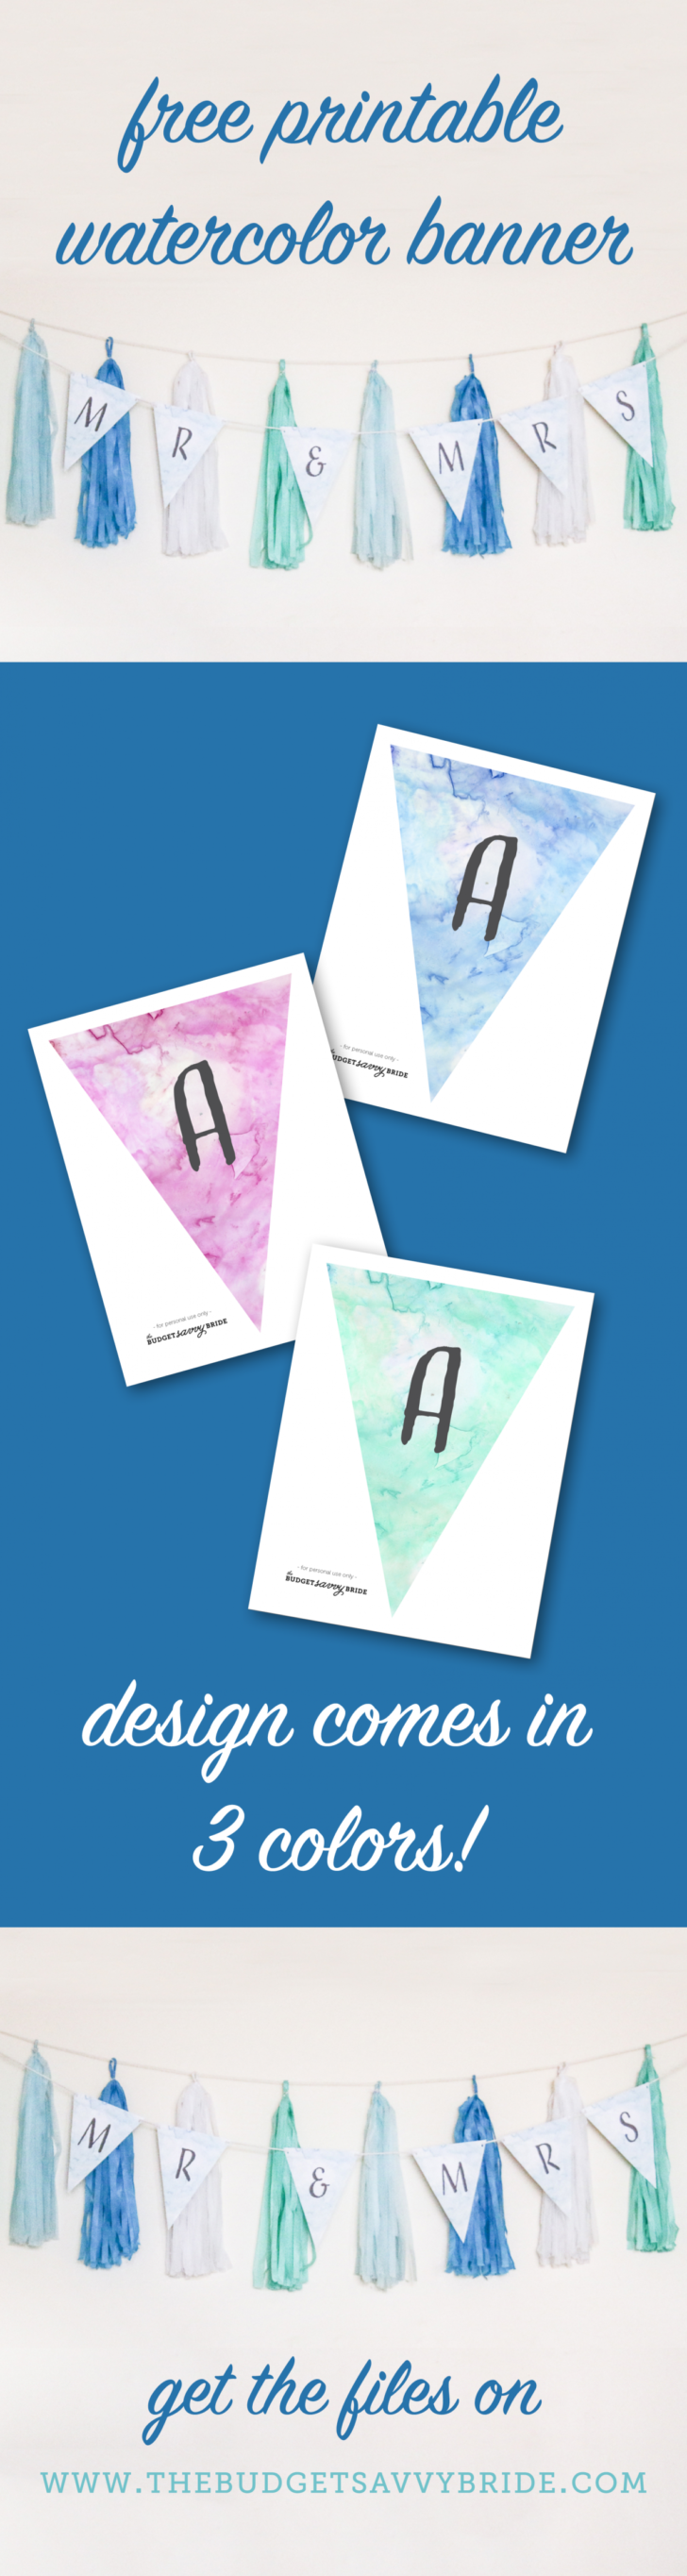 Download these ADORABLE watercolor banners! Free printable files from The Budget Savvy Bride!